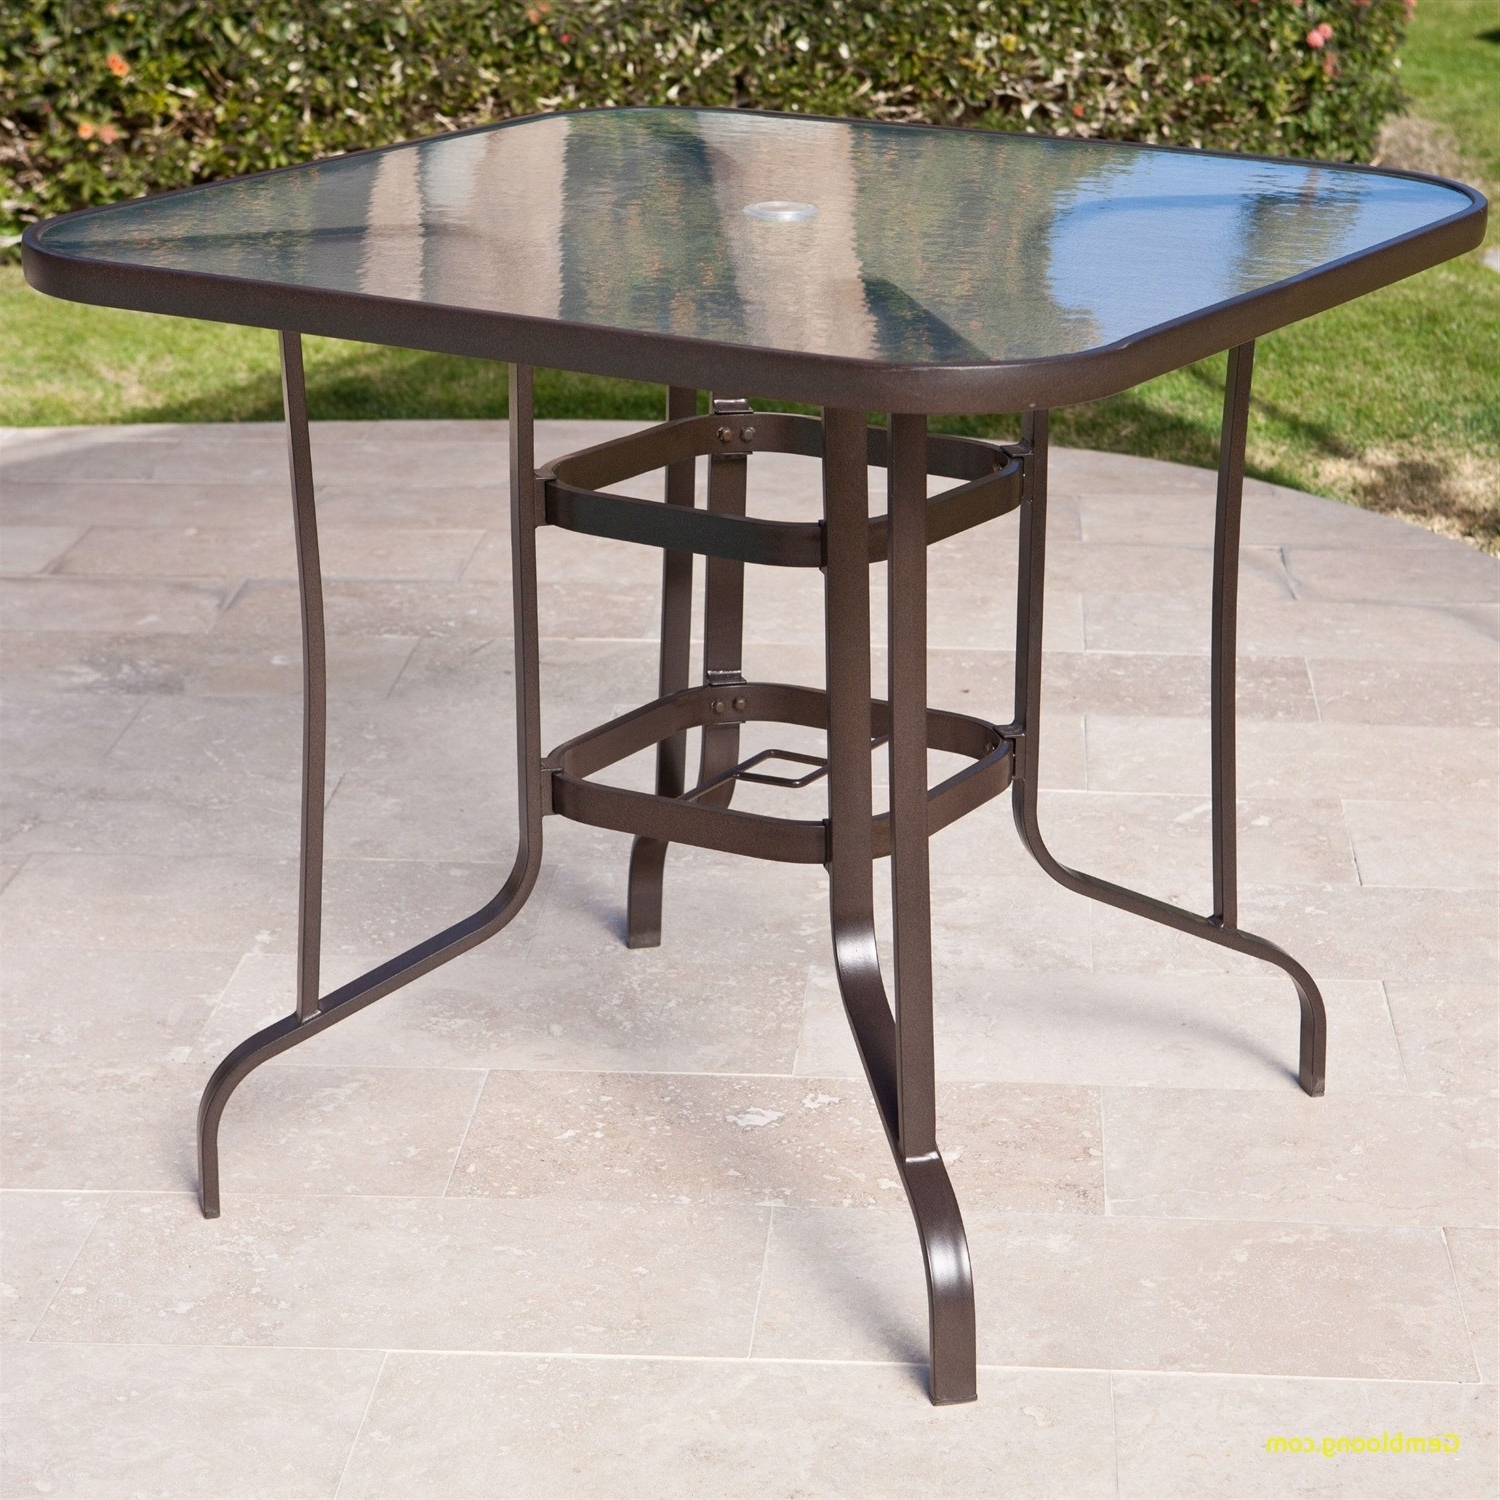 Patio Tables With Umbrella Hole Pertaining To Famous Patio Table With Umbrella Hole – Pelikansurf (View 8 of 20)